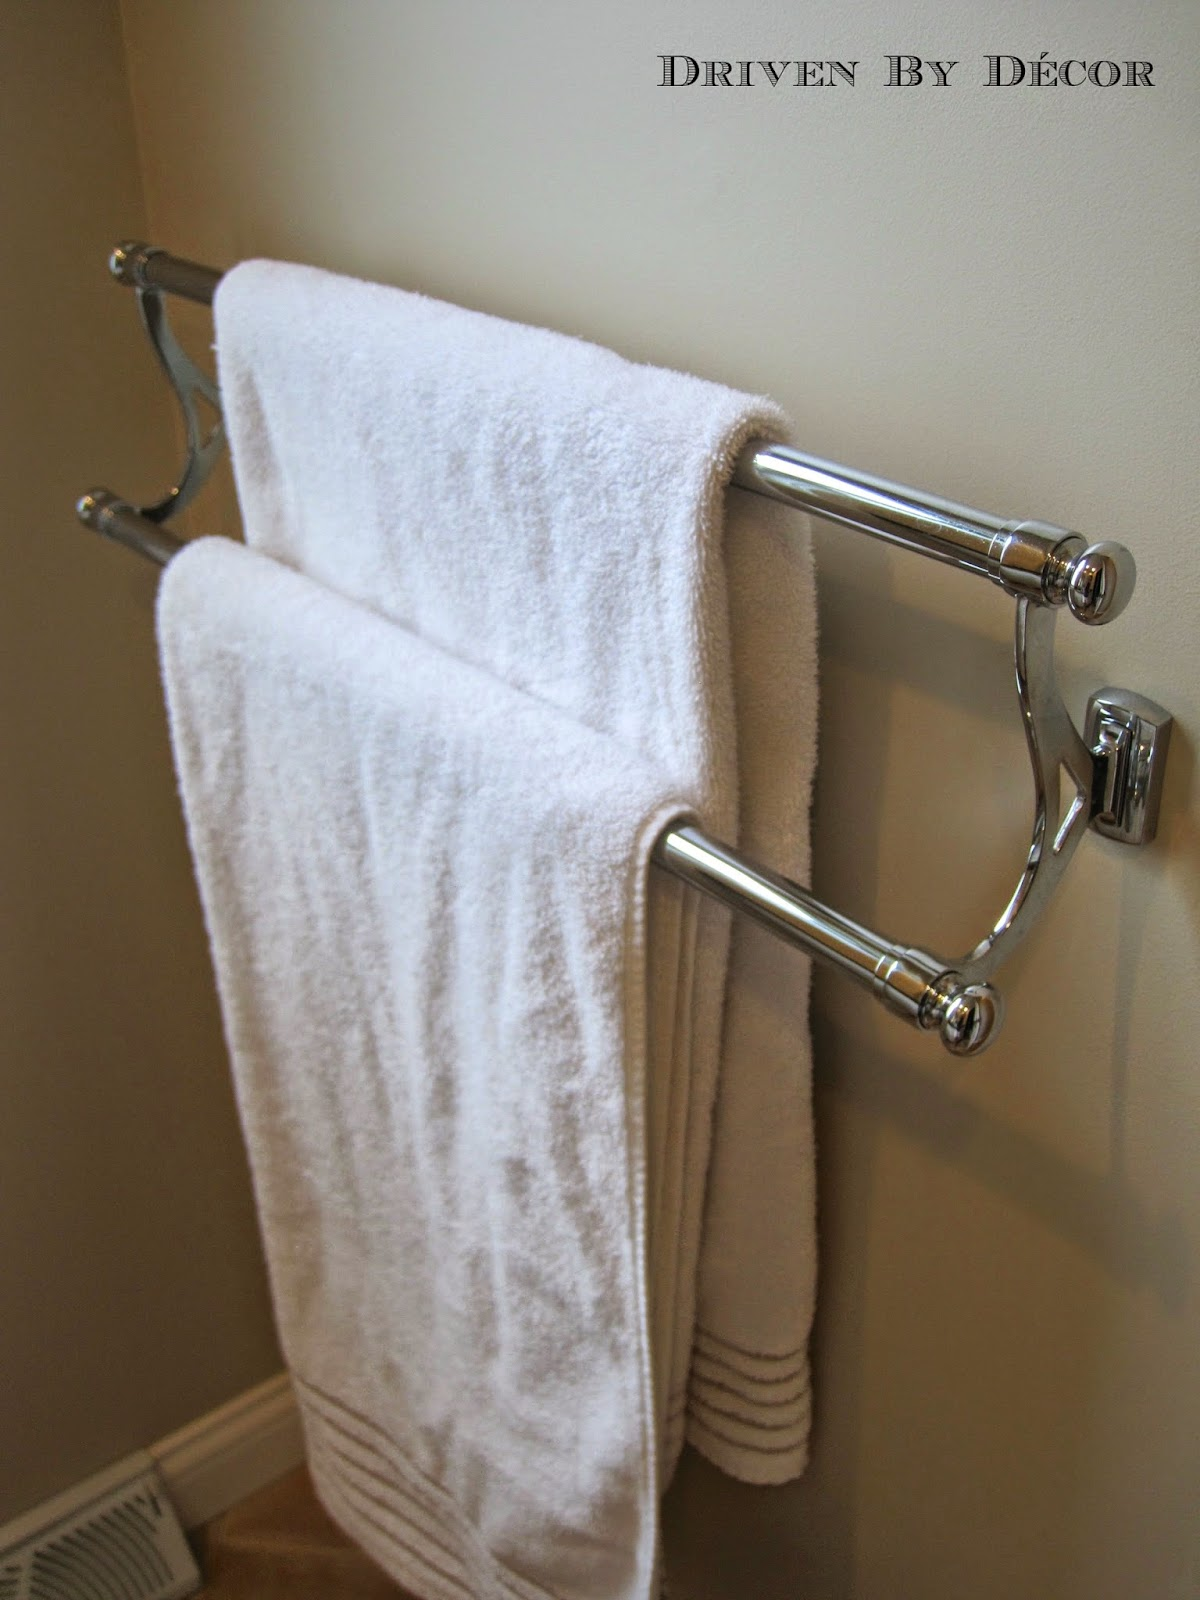 house tour girlsu0027 bathroom - Double Towel Bar